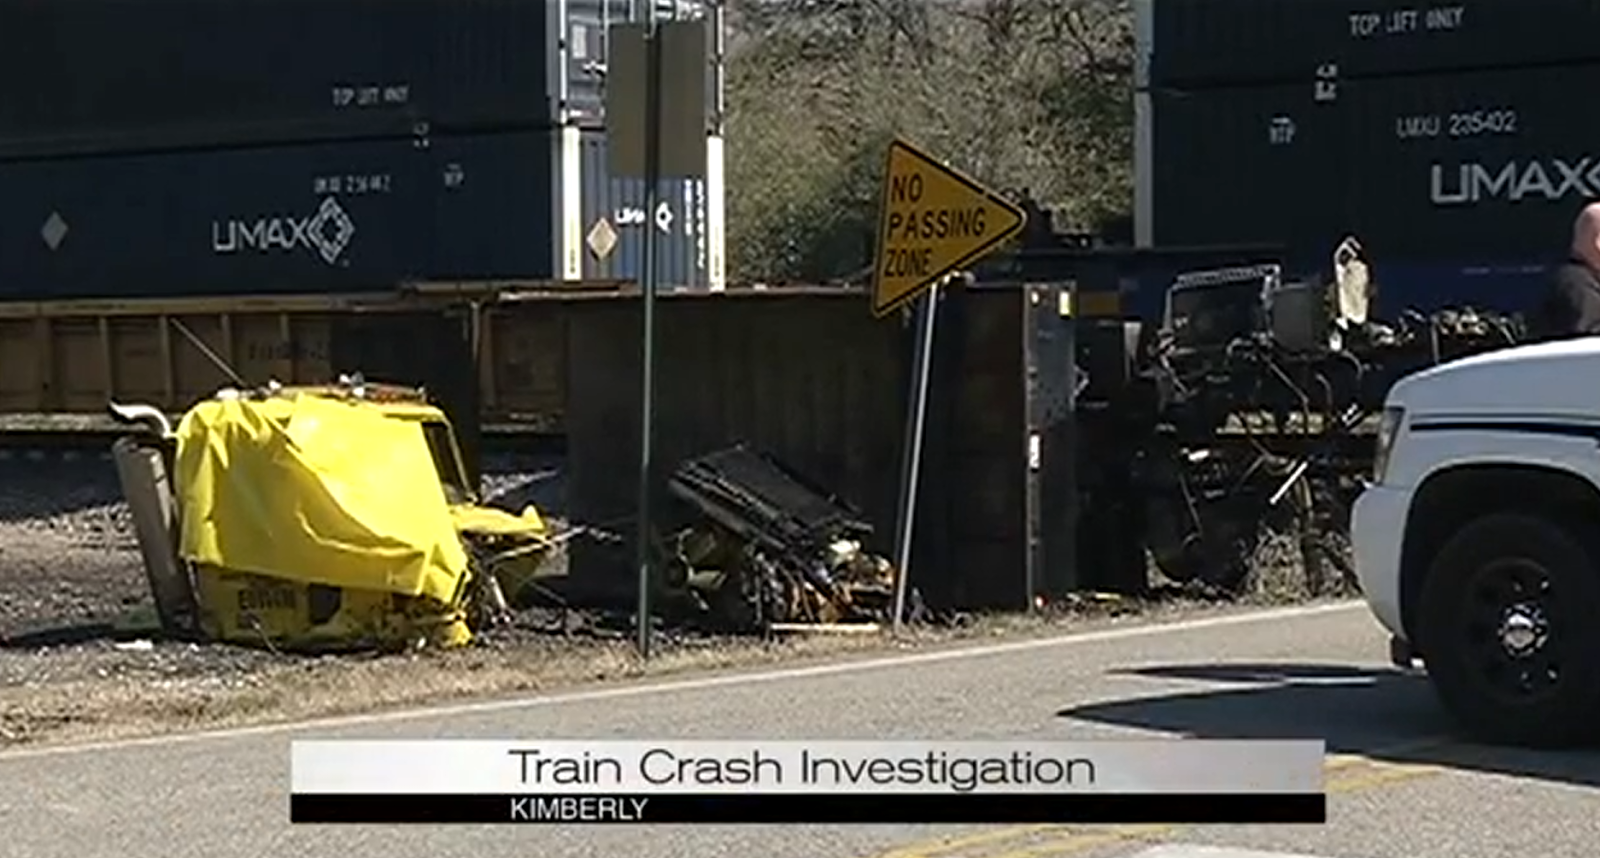 Alabama jefferson county kimberly - Jefferson County Alabama Dump Truck Driver Killed In Collision With Train